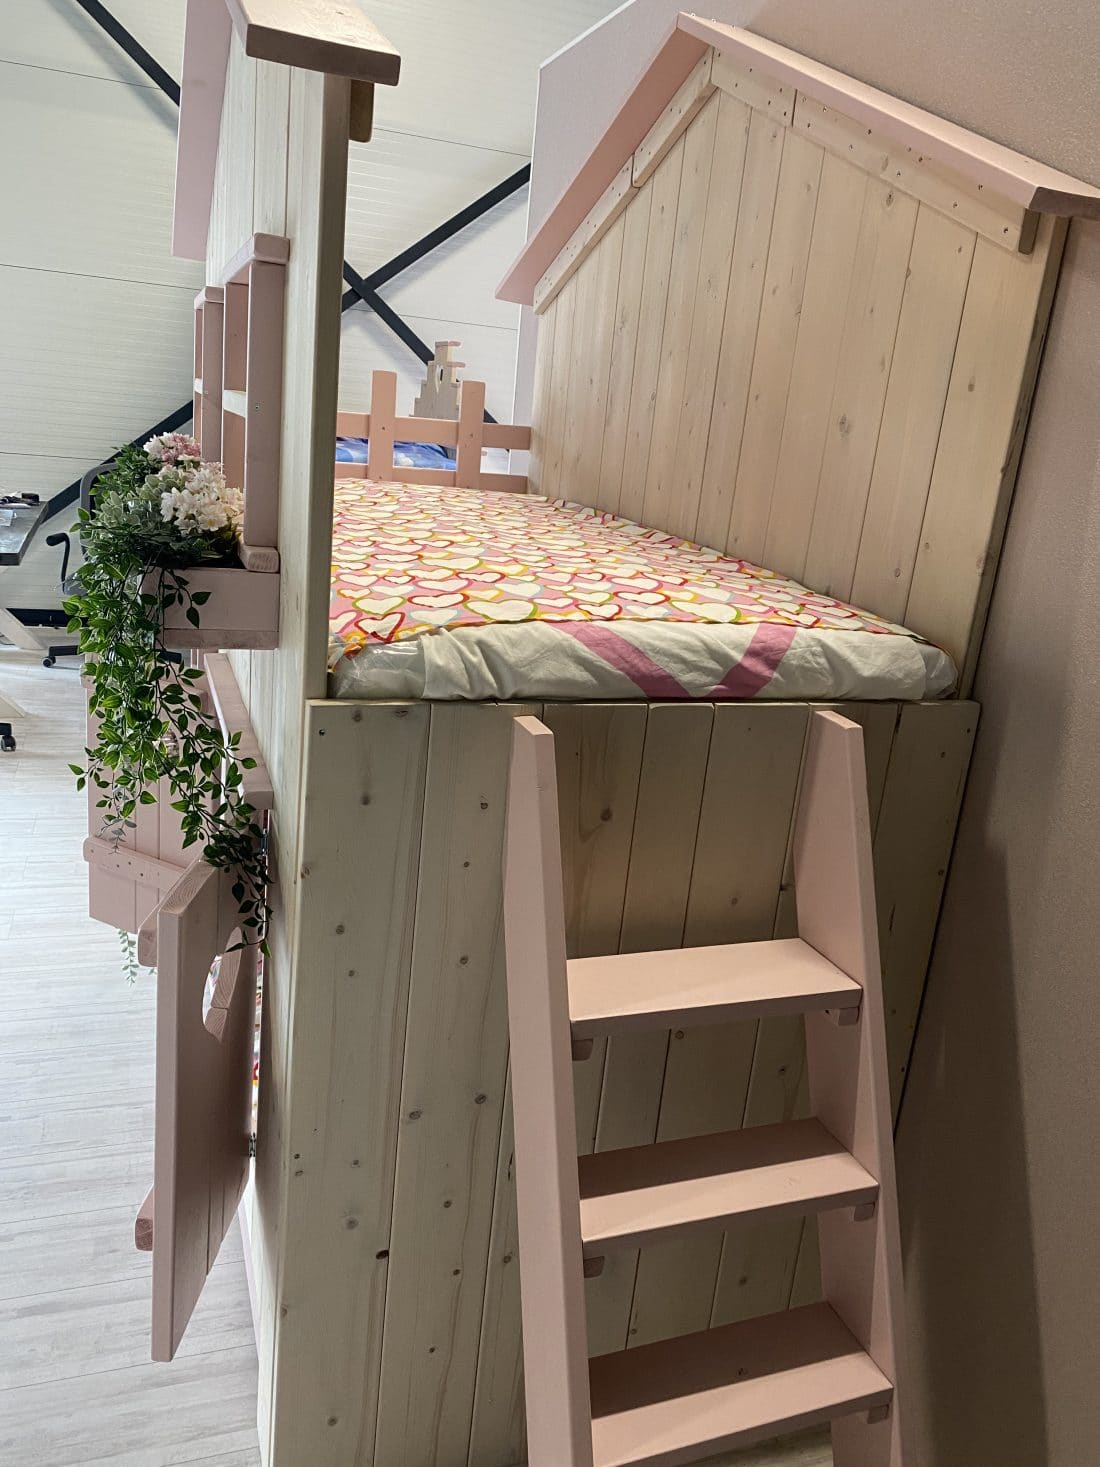 Boomhut Bed Roos